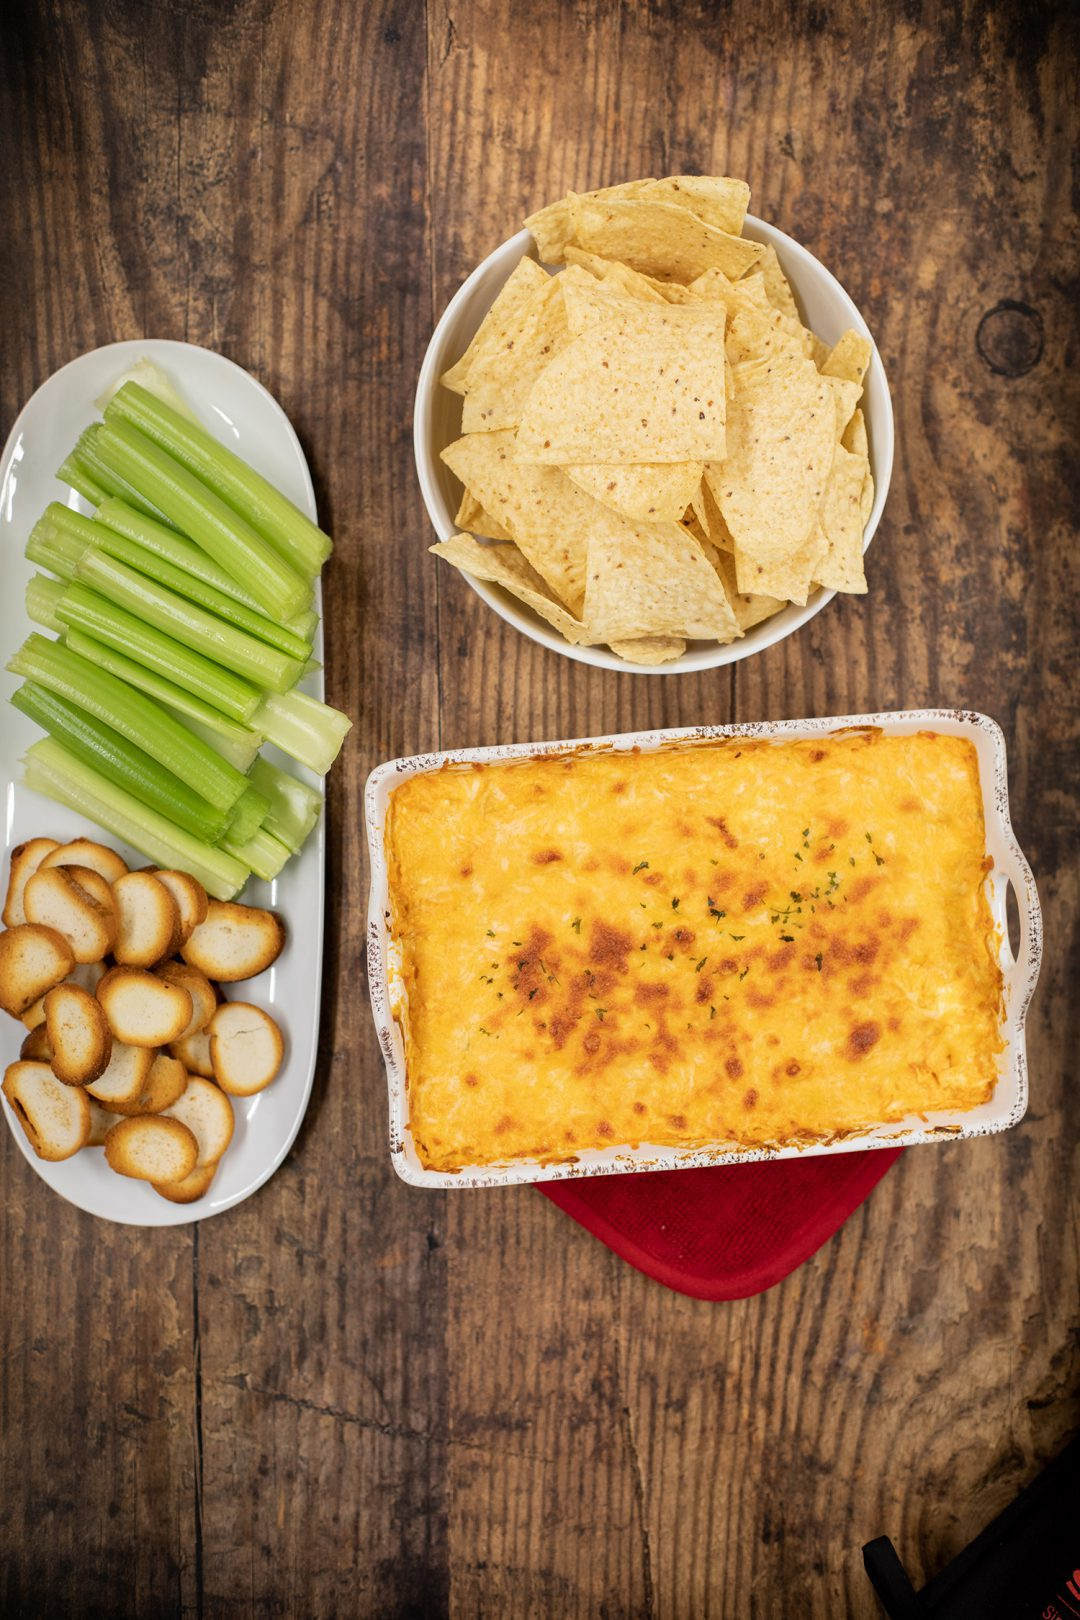 Buffalo chicken dip with chips and celery.